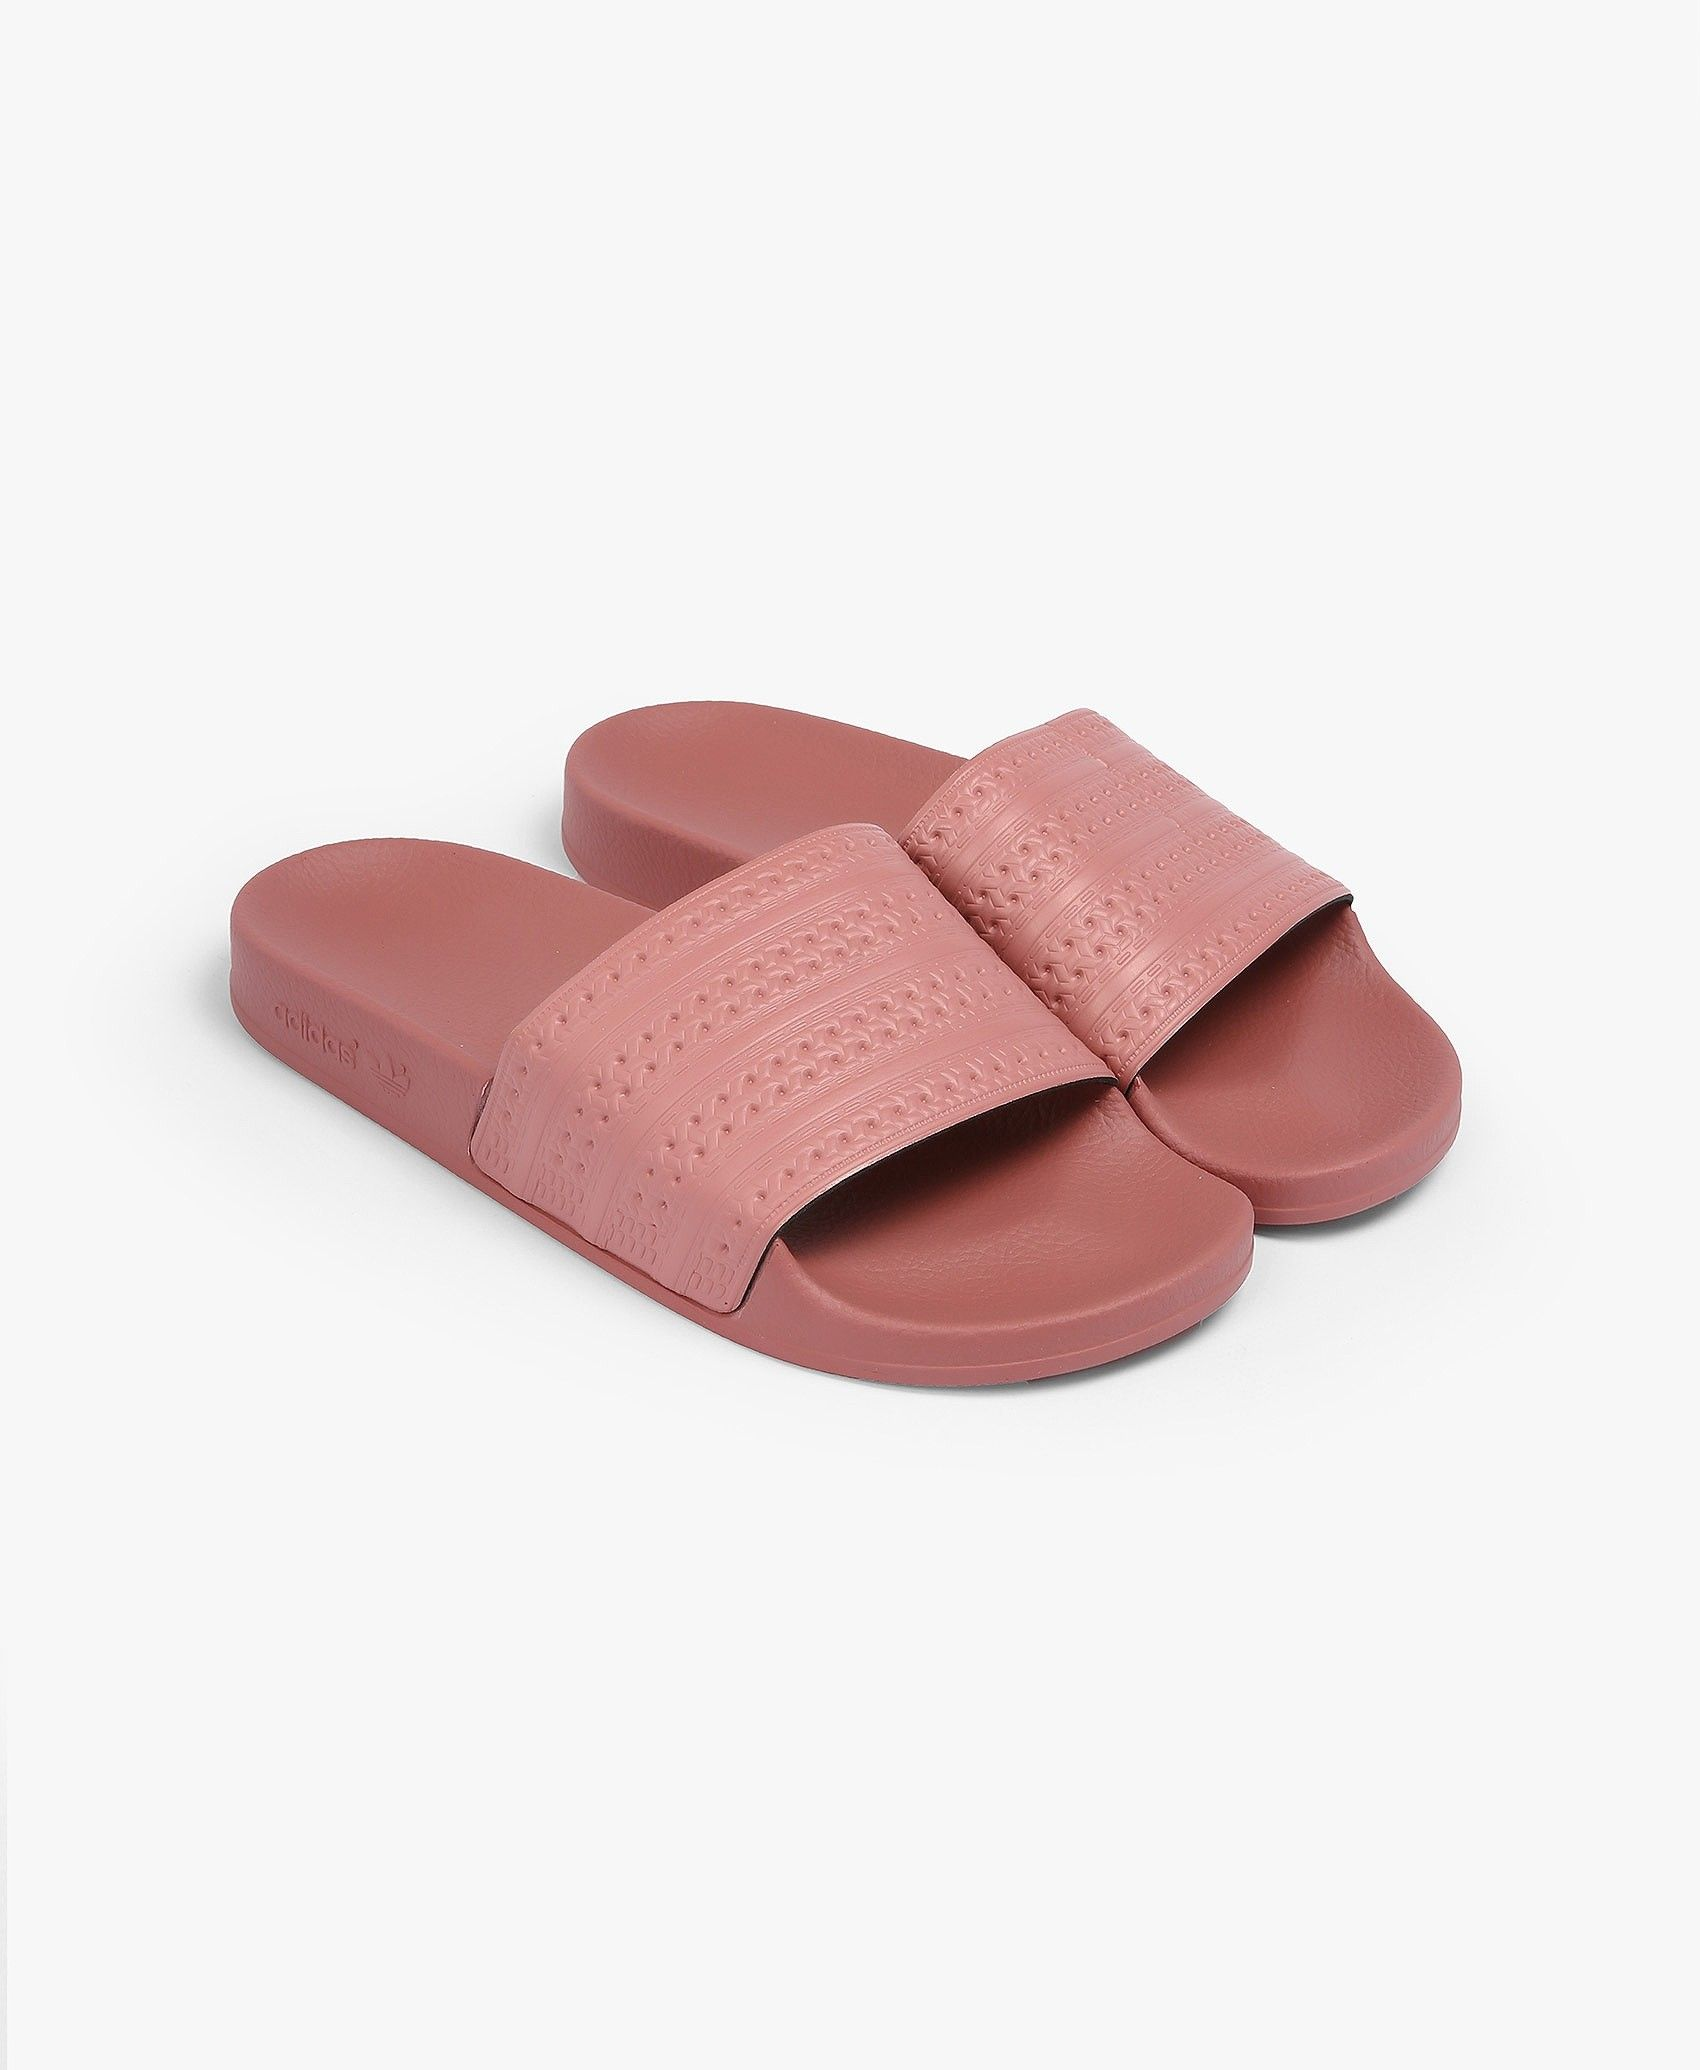 size 40 8e0f5 20d47 Dusty Pink Adilette Slides - Sports